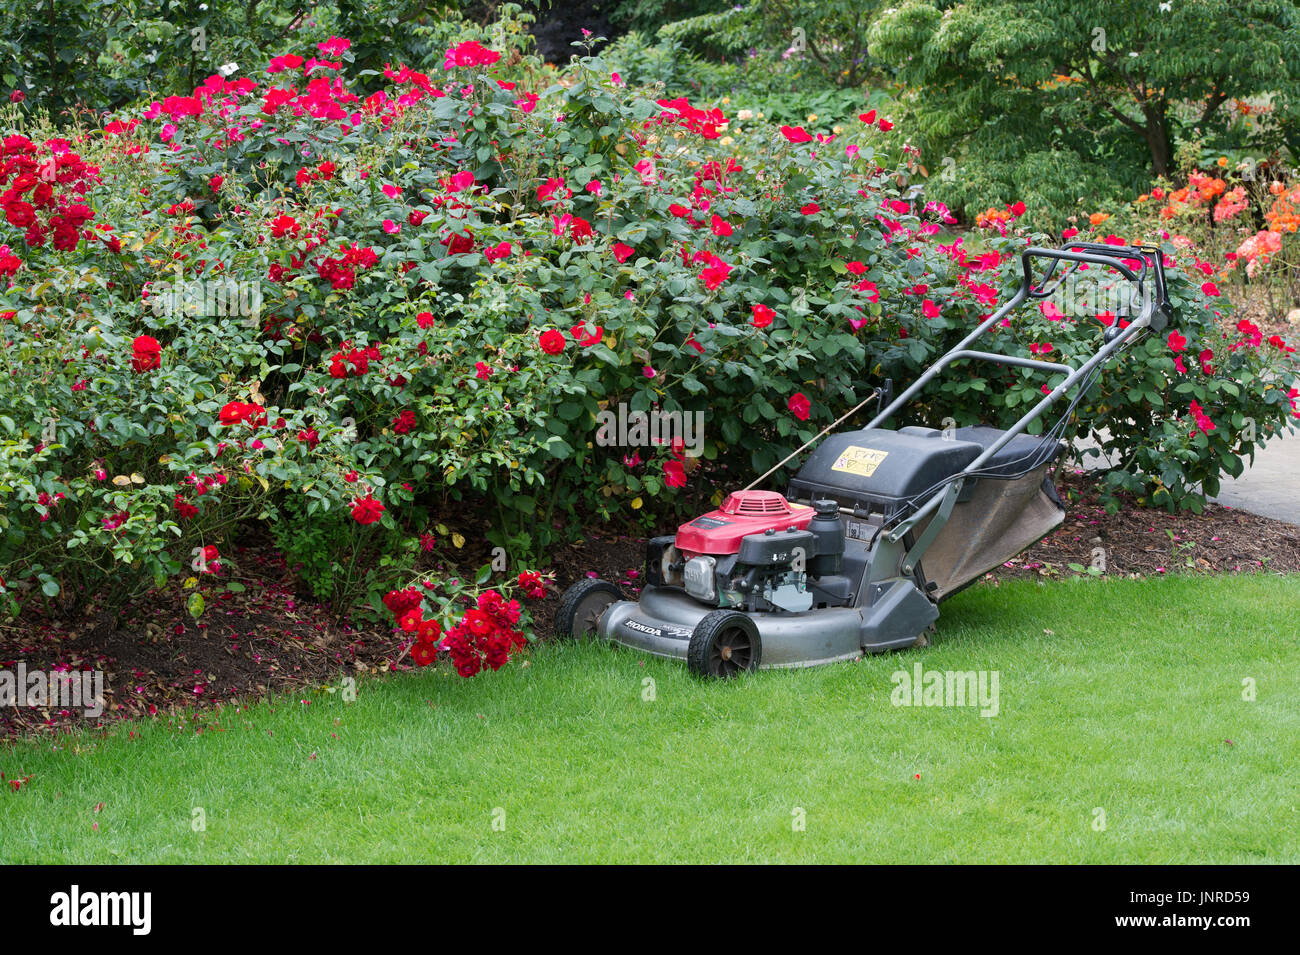 Petrol lawn mower in a garden. UK - Stock Image